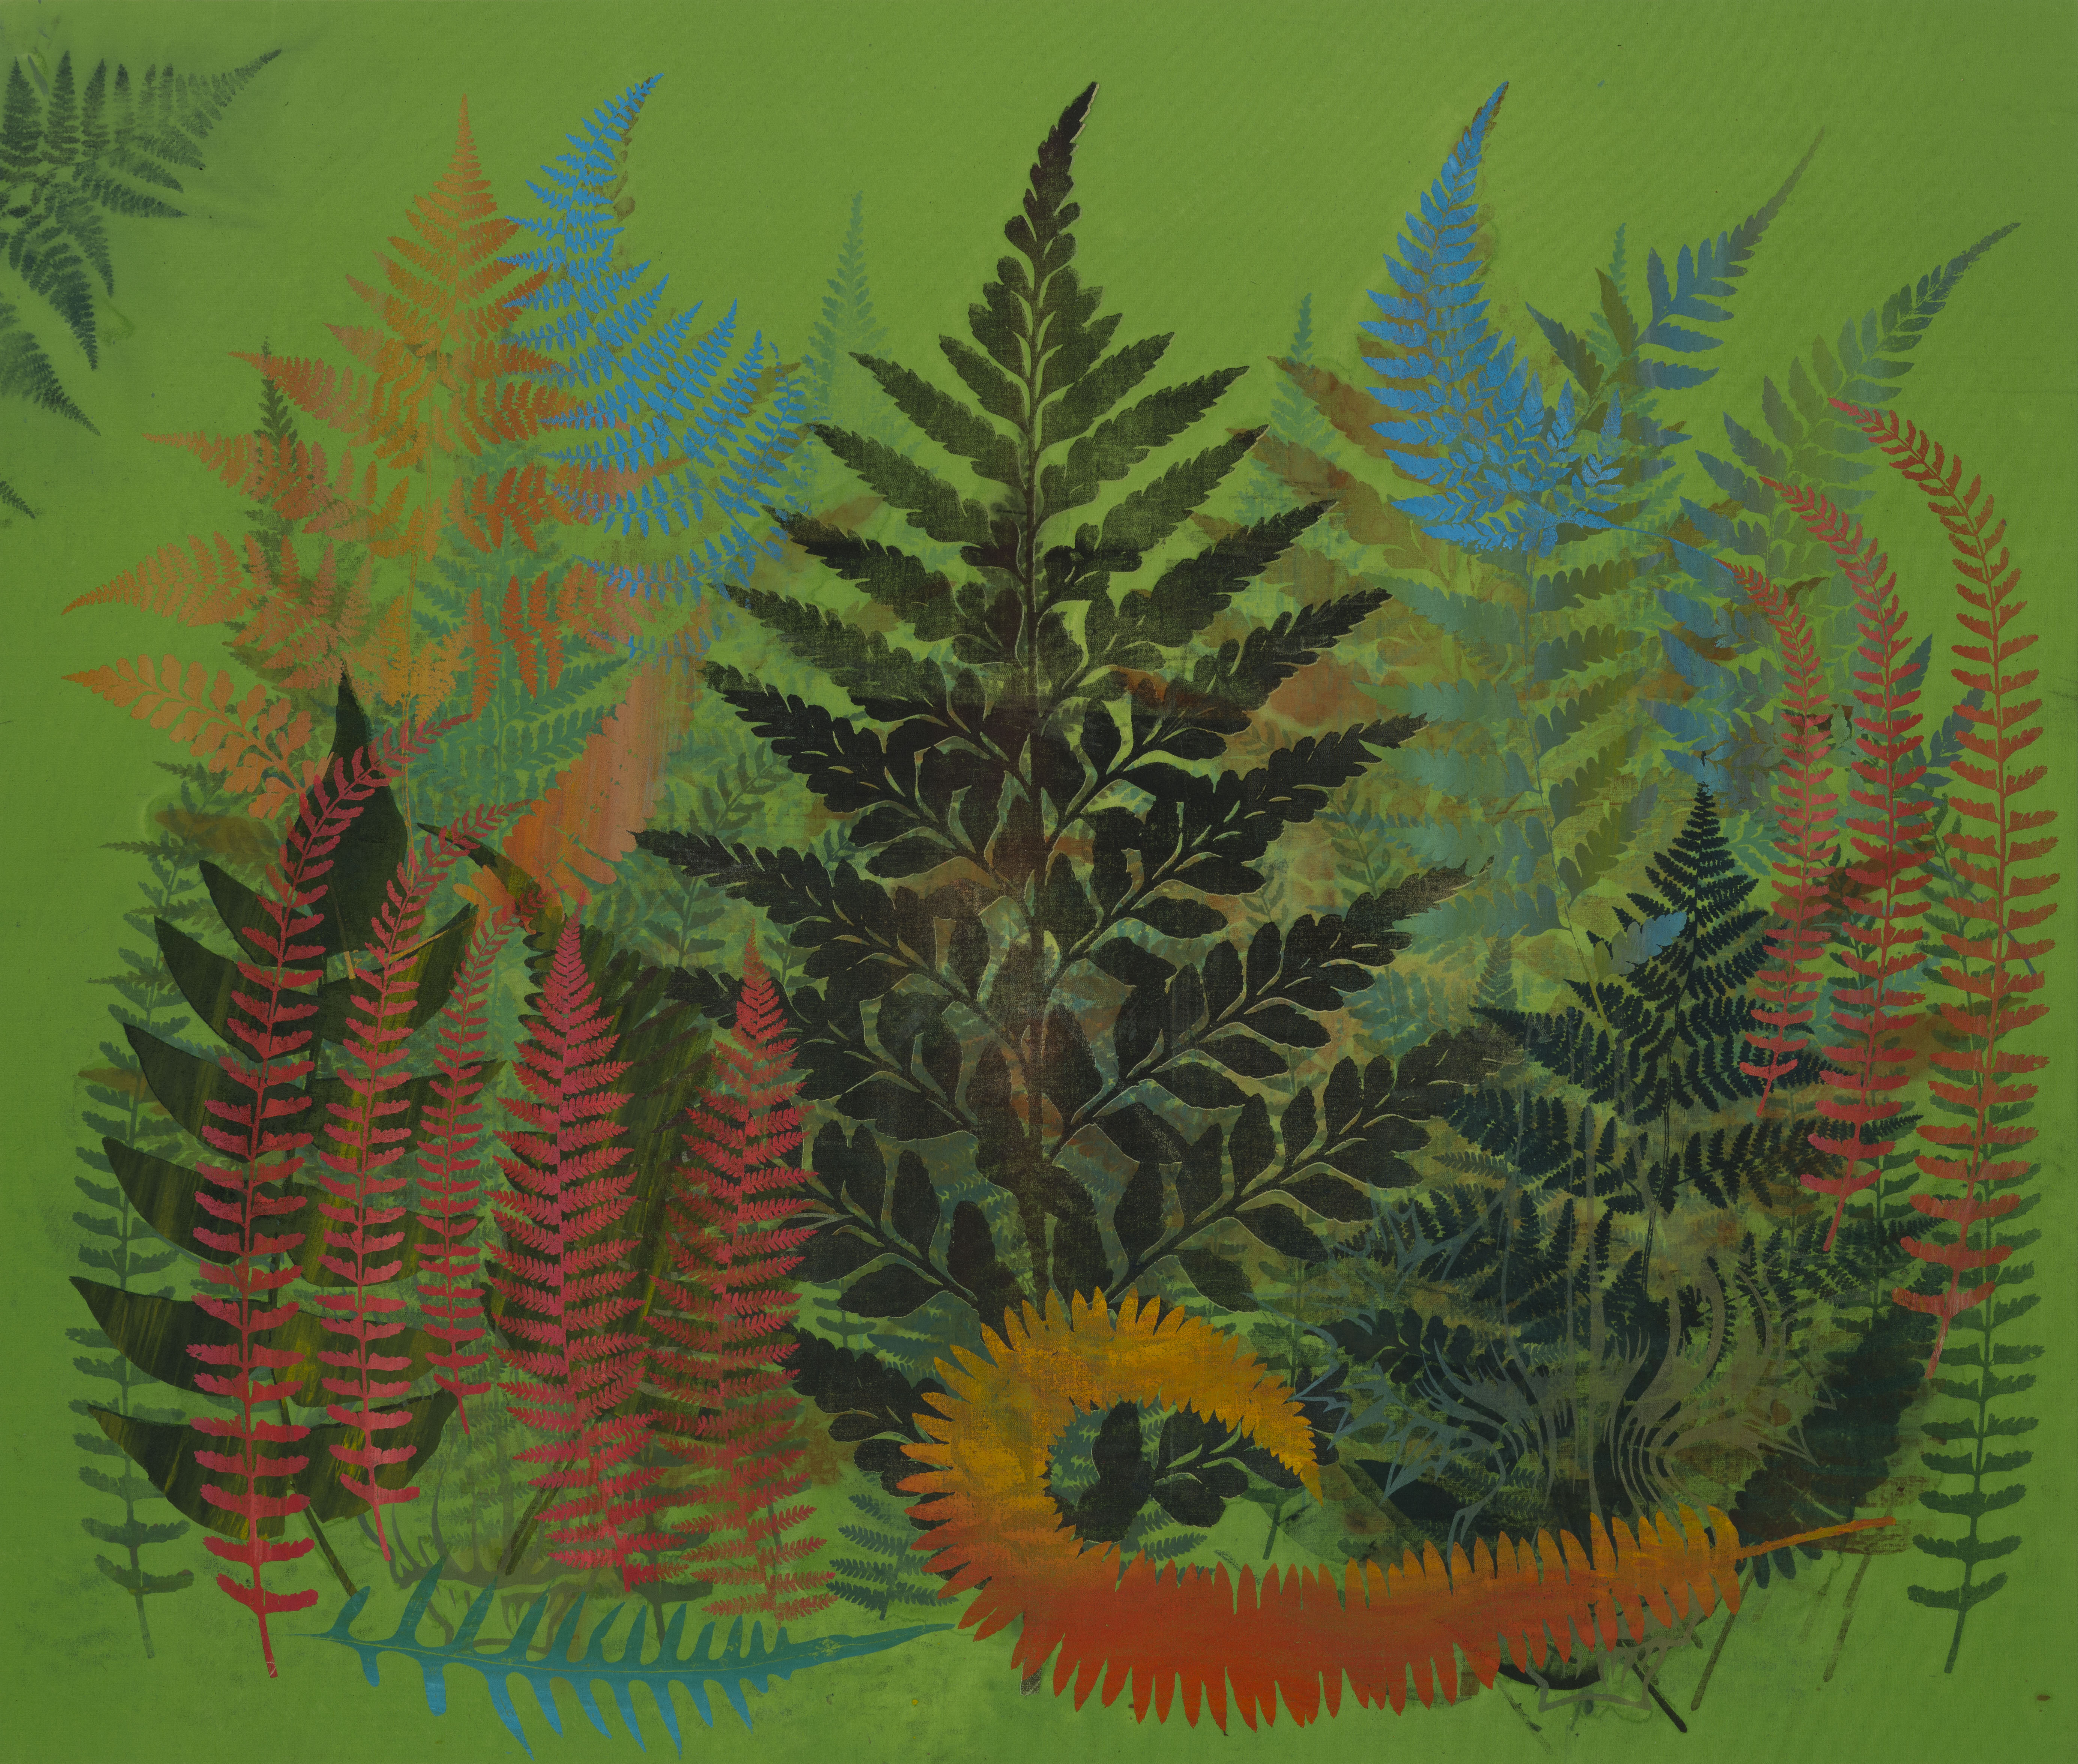 Philip Taaffe painting